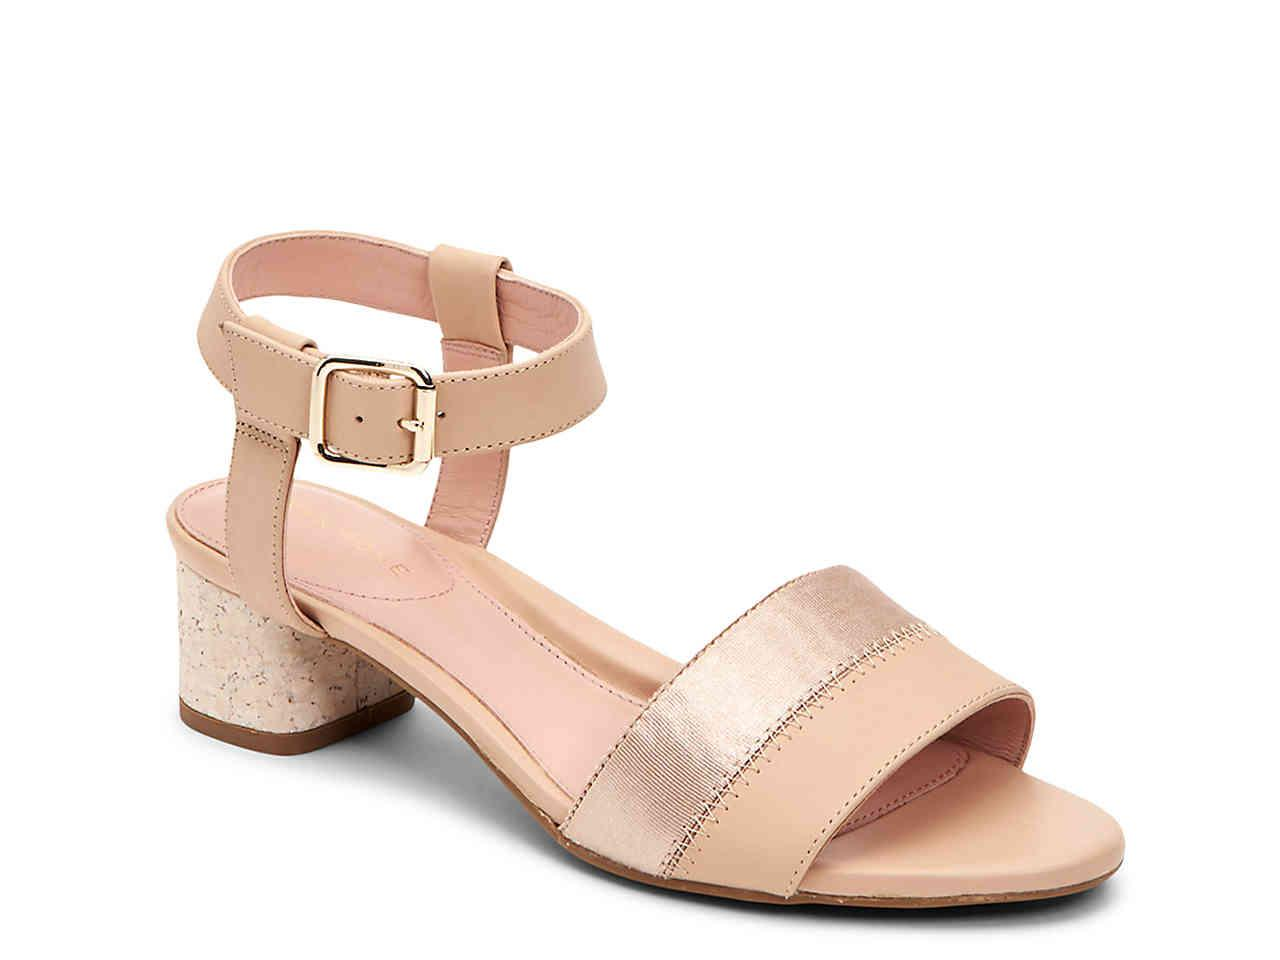 a85c7941489 Lyst - Taryn Rose Makena Sandal in Natural